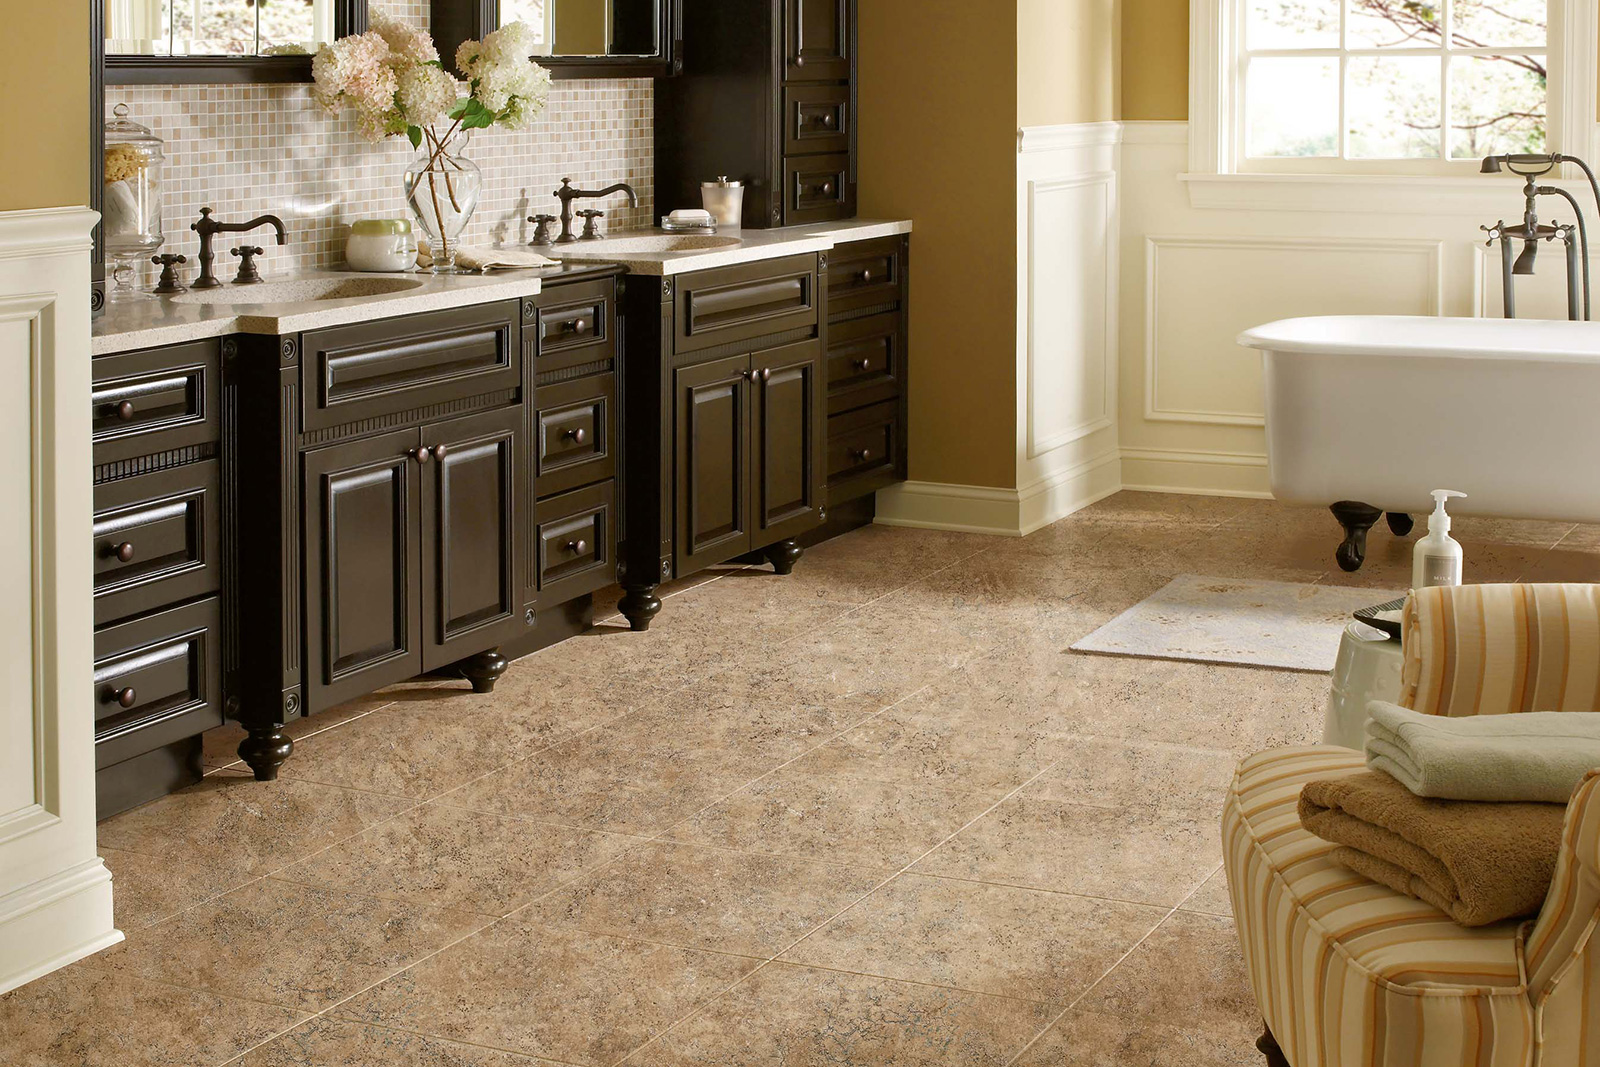 Vinyl Bathroom Flooring Ideas Unique Bathroom Vinyl Flooring  Cheap Vinyl Bathroom Flooring  Houselogic Inspiration Design